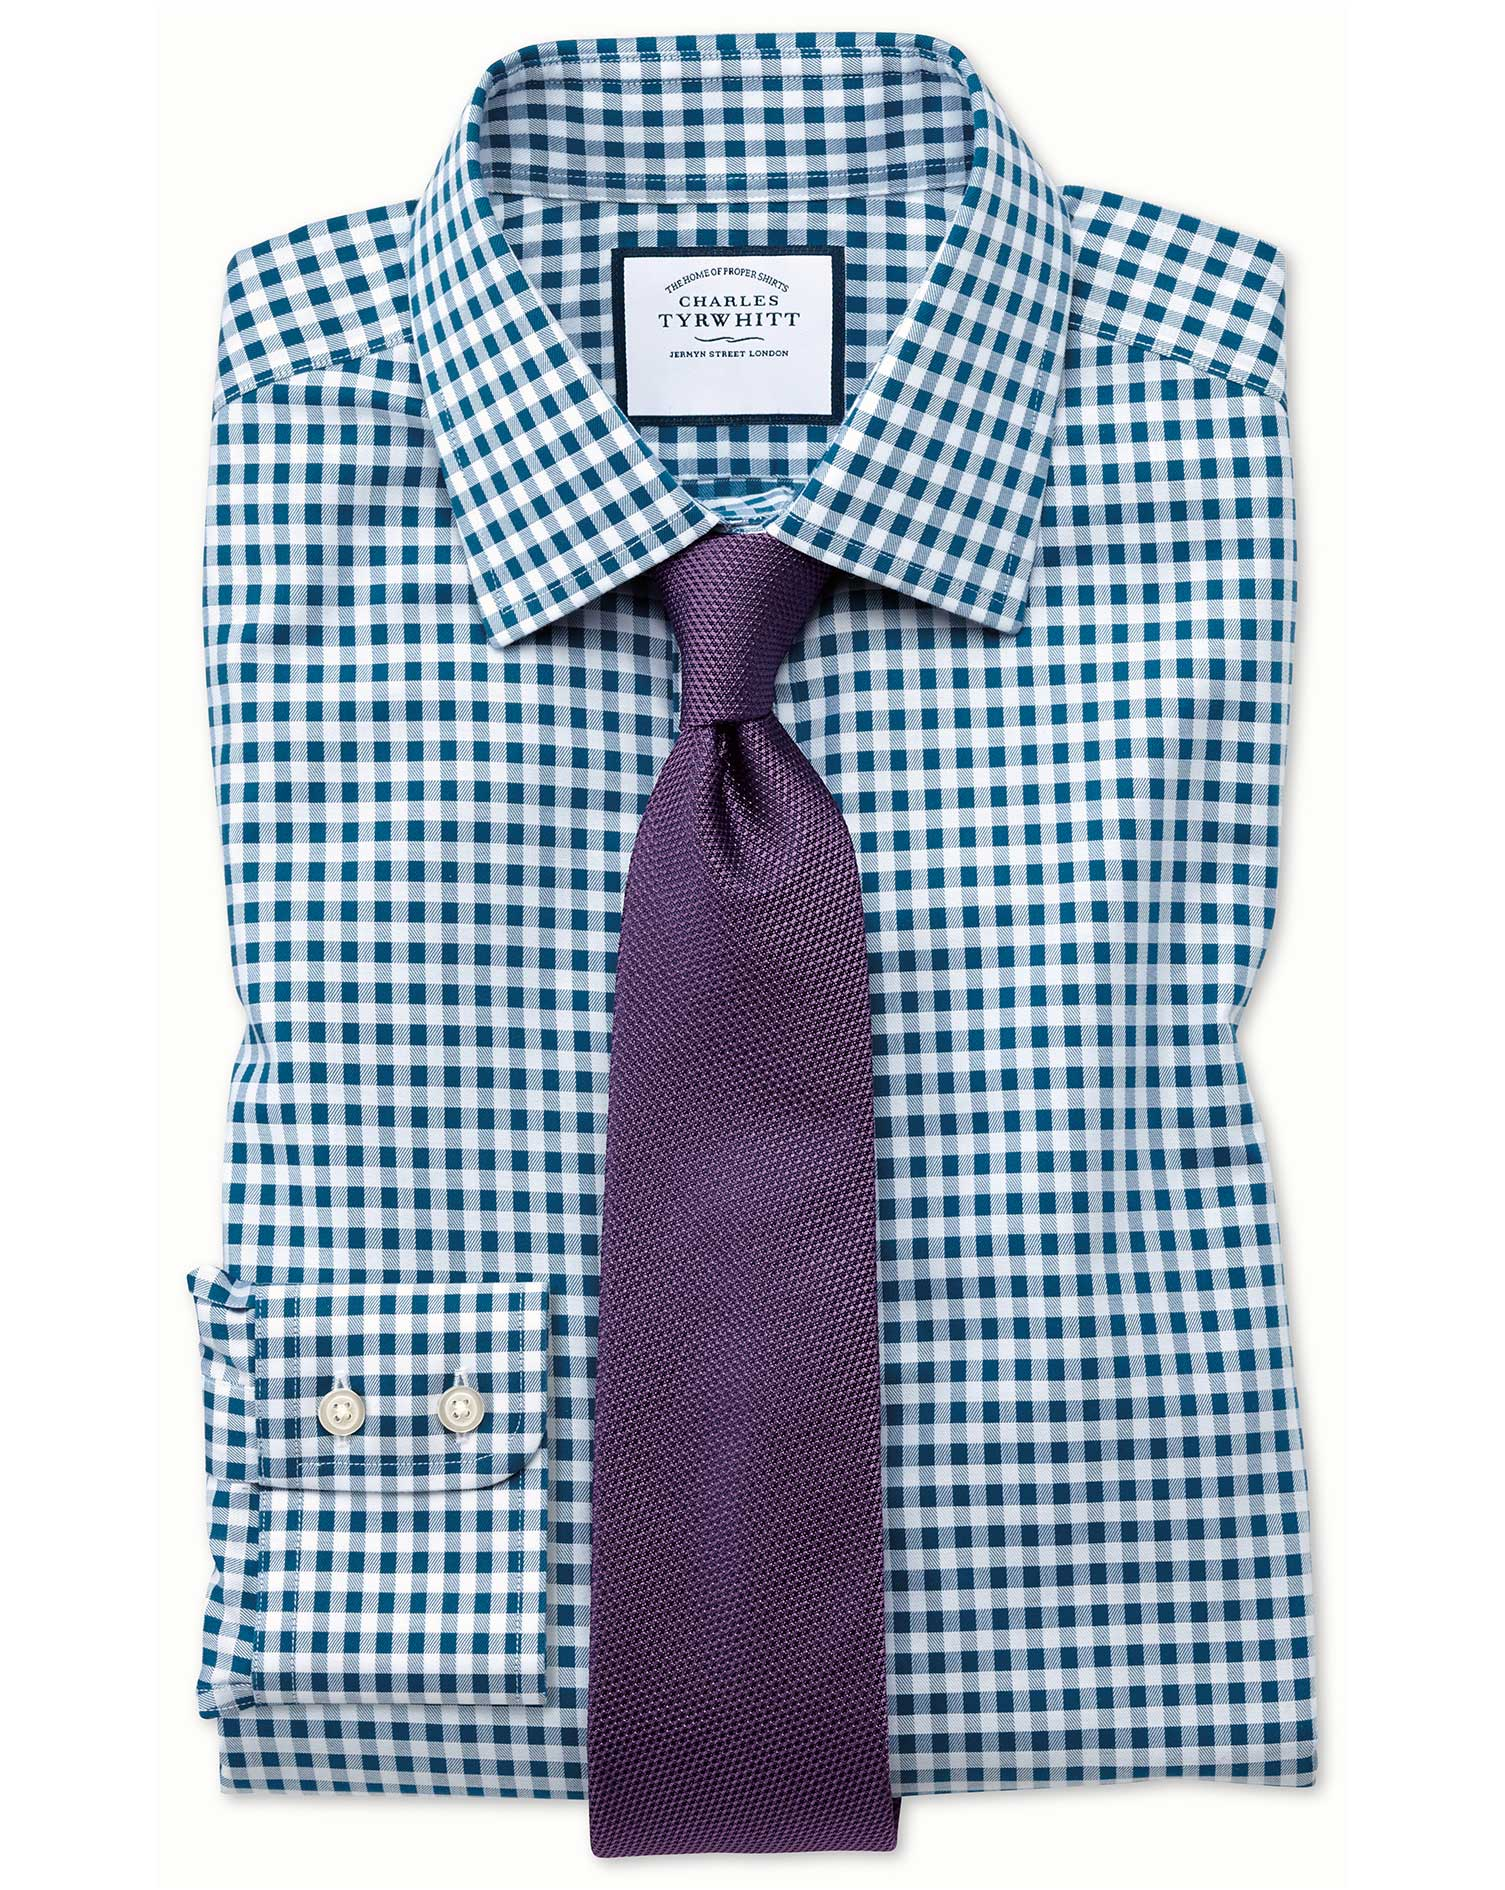 Slim Fit Non-Iron Gingham Teal Cotton Formal Shirt Single Cuff Size 17/34 by Charles Tyrwhitt